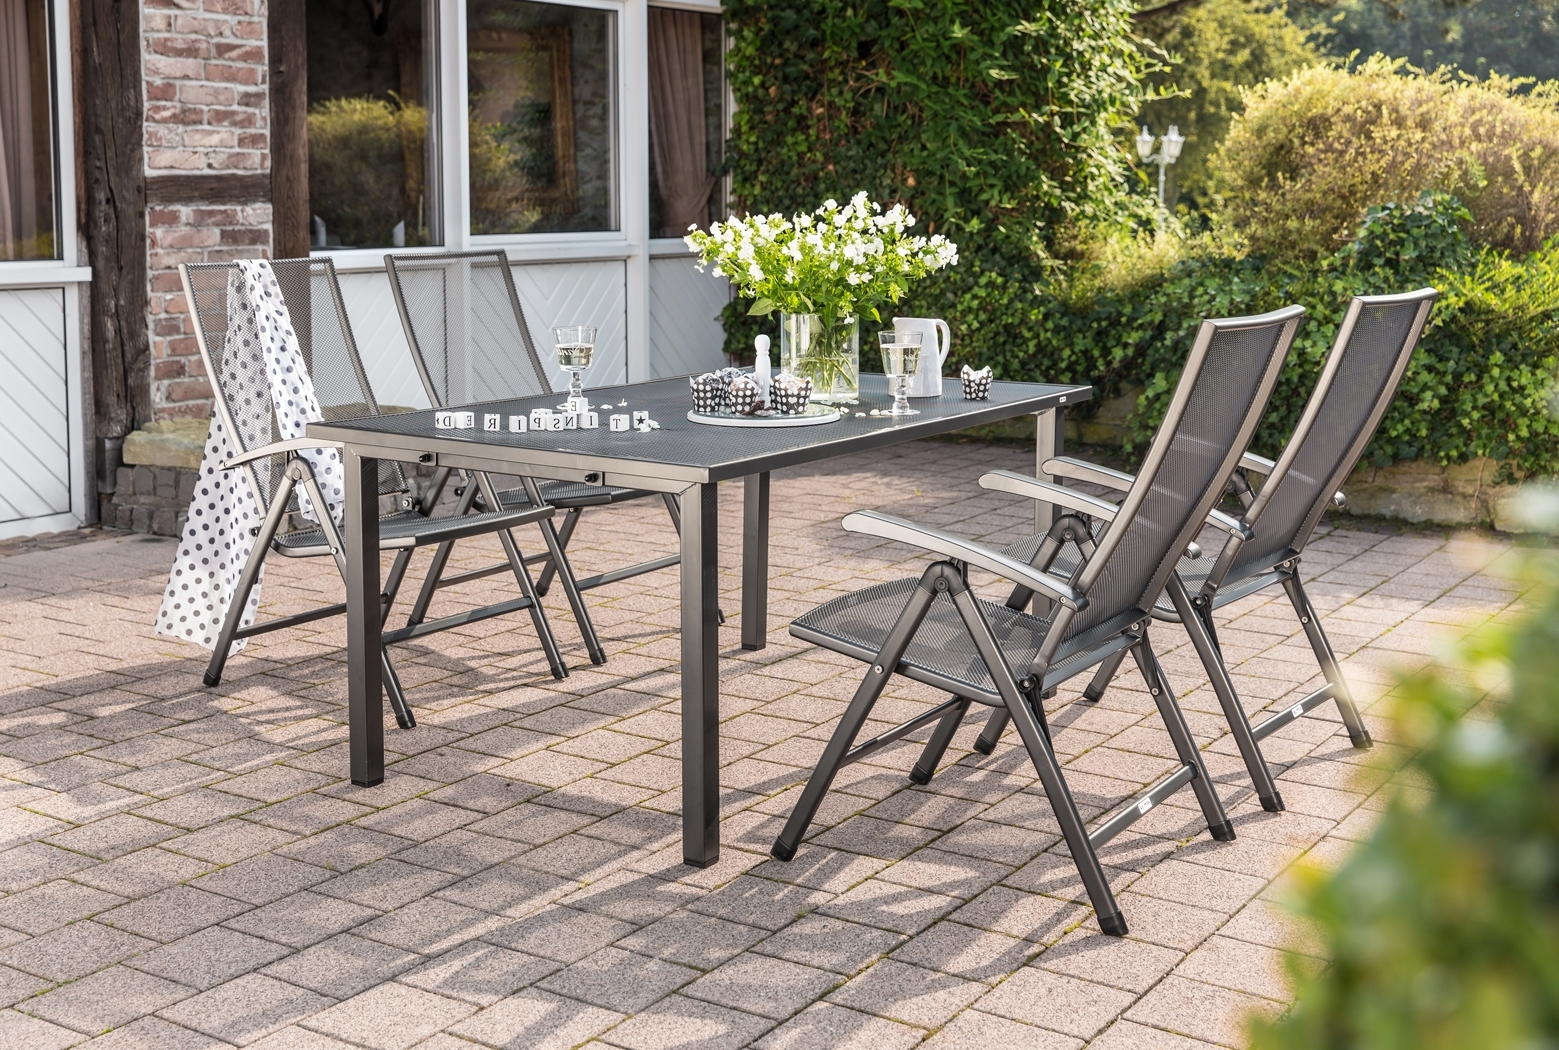 Table Tennis, Tricycles, Toys, Patio Furniture & Fitness Pertaining To Kettler Patio Umbrellas (View 17 of 20)